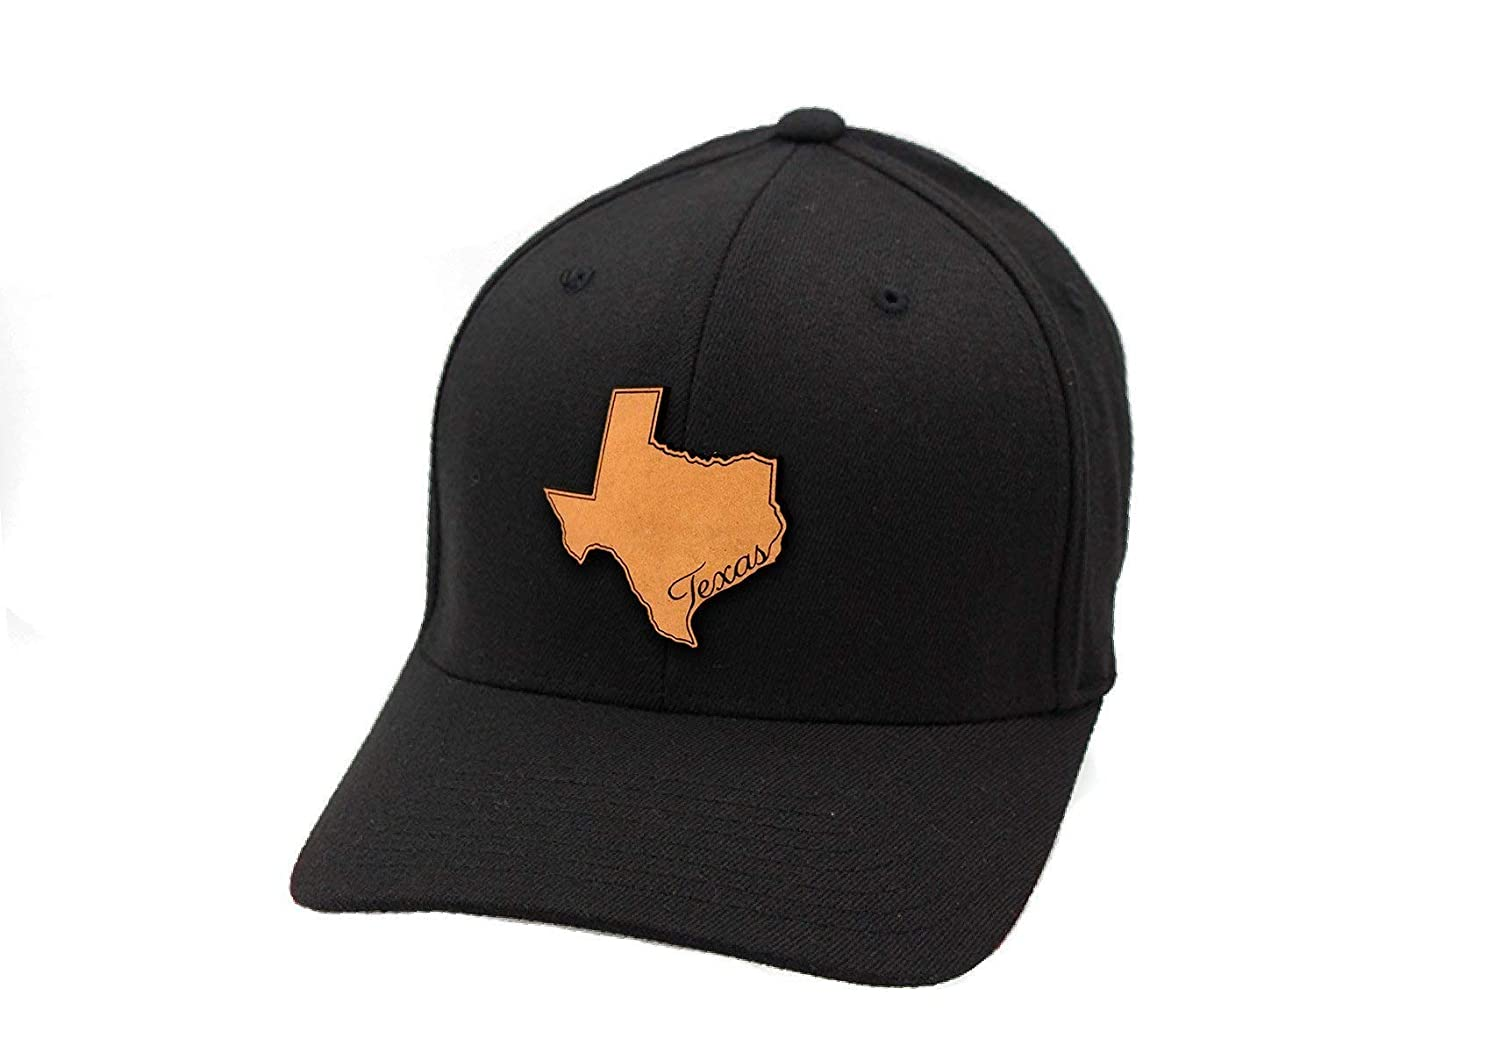 d41a2c79 Branded Bills 'The Texan' Leather Patch Hat Flex Fit at Amazon Men's  Clothing store: